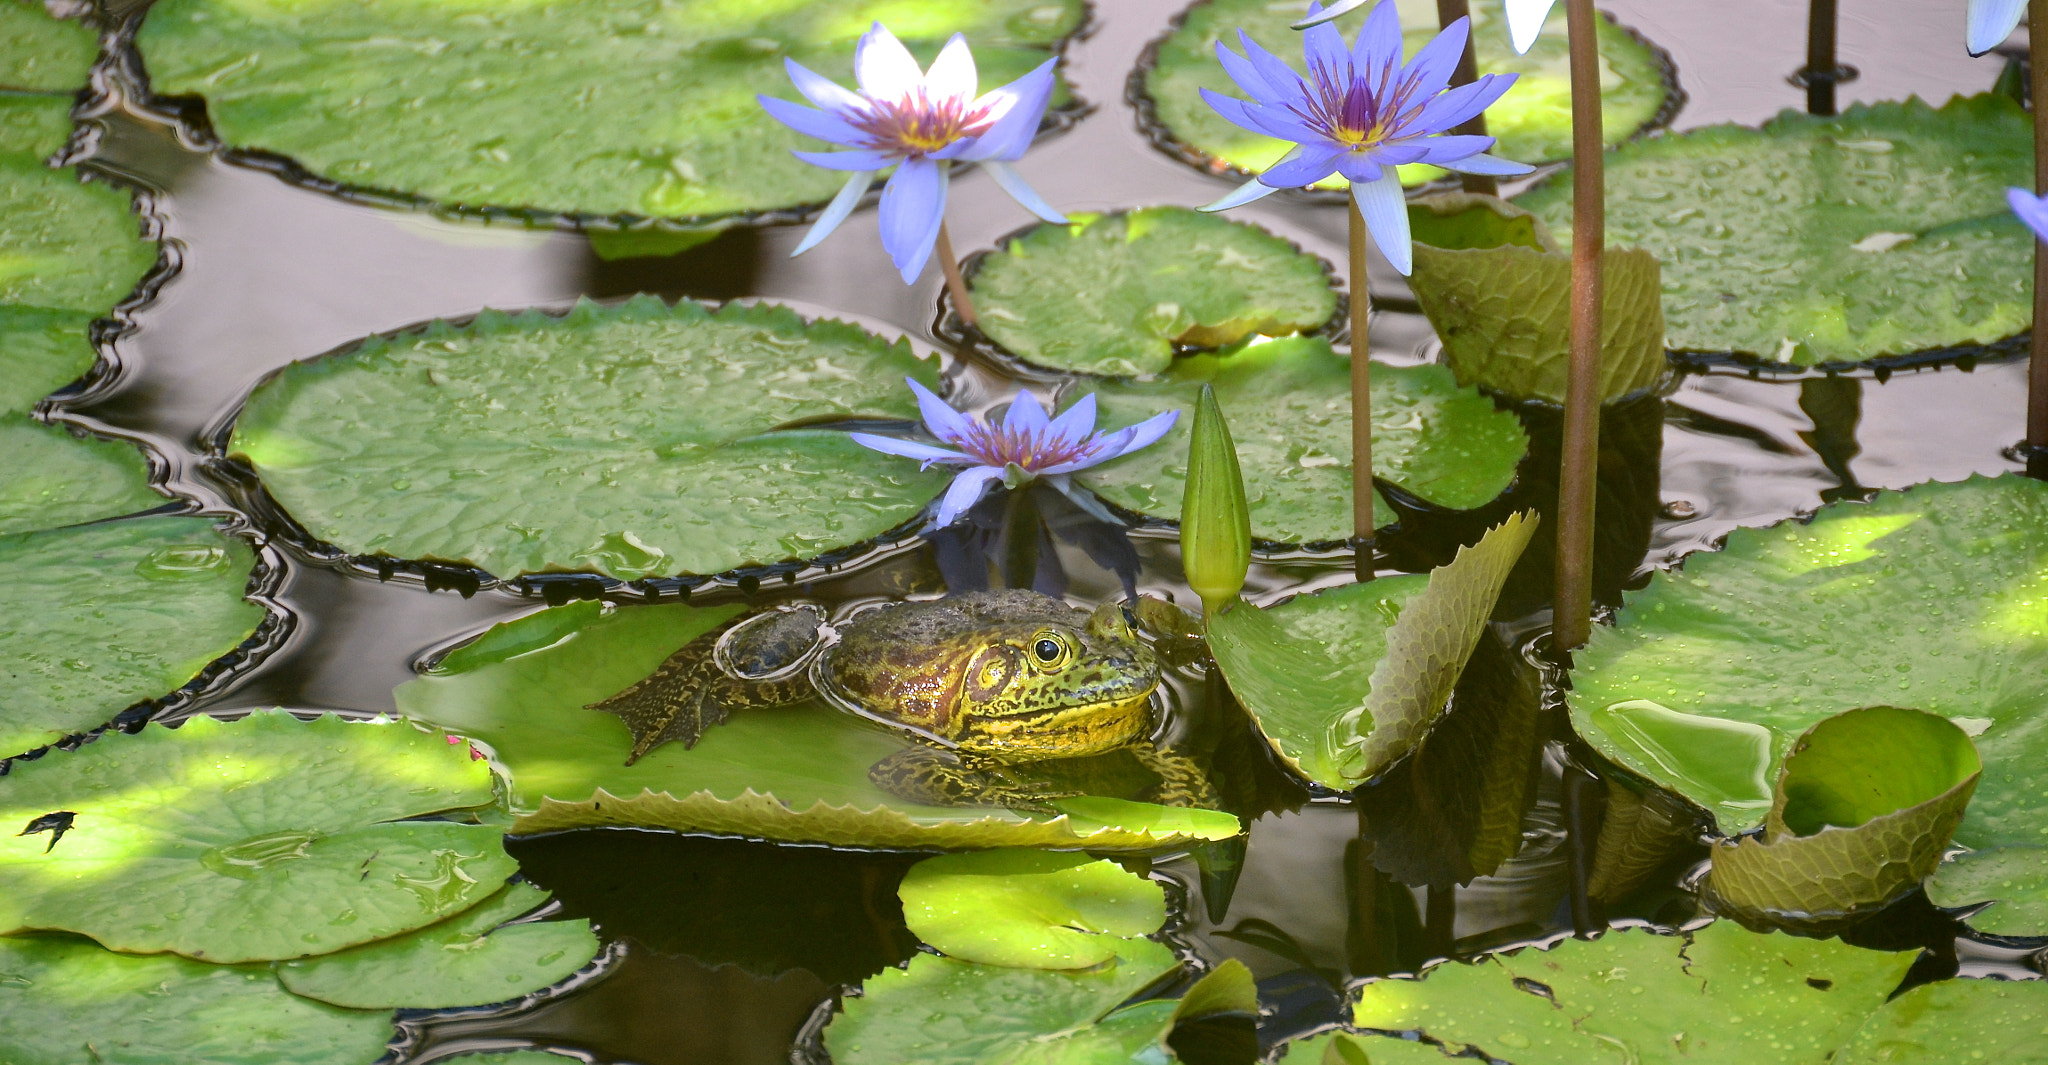 Photograph Frog Pond by David Tapia on 500px